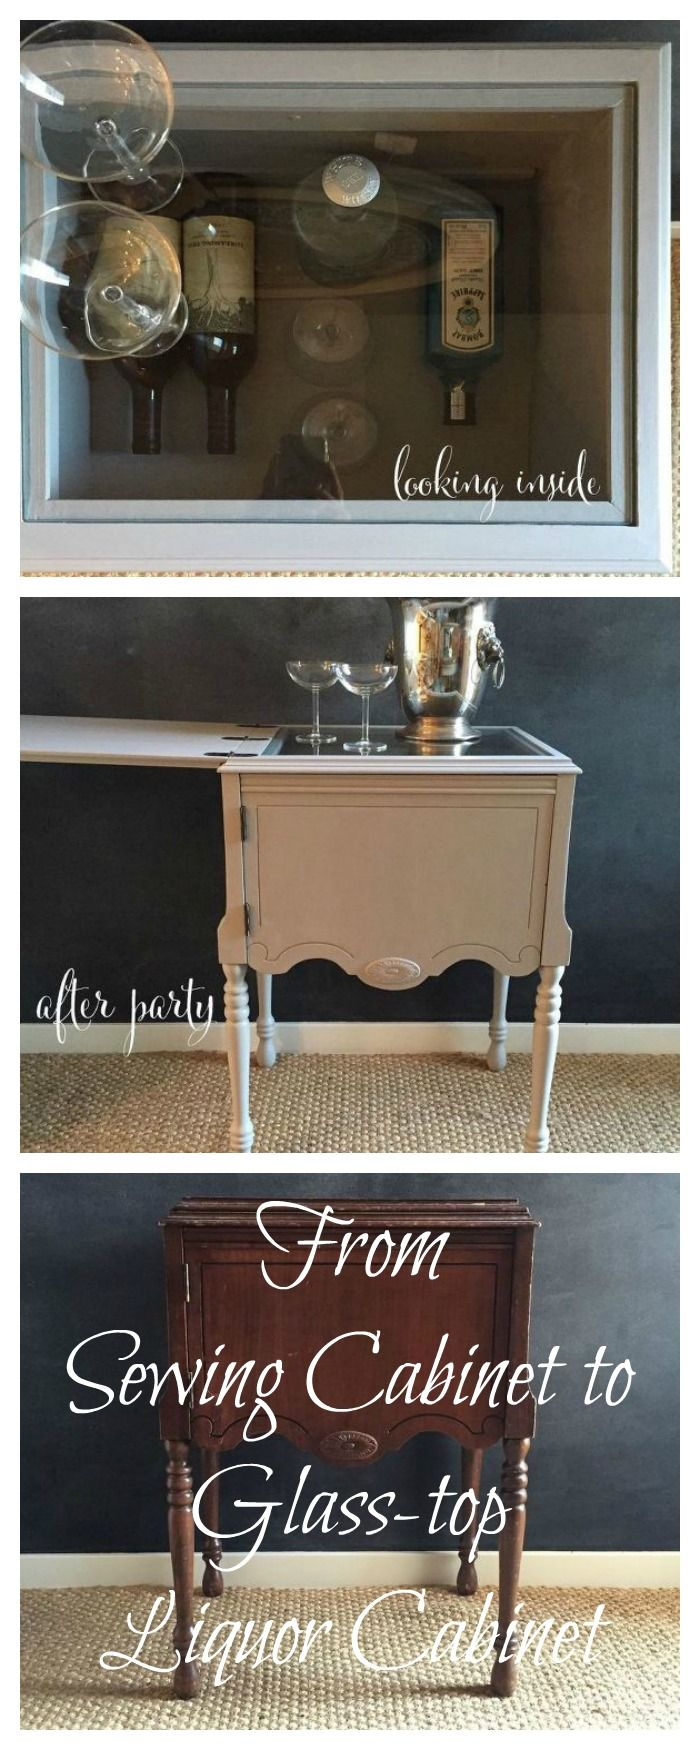 Hometalk easy cabinet door projects - Sewing Machine Cabinet To Liquor Cabinet With Glass Top For Serving